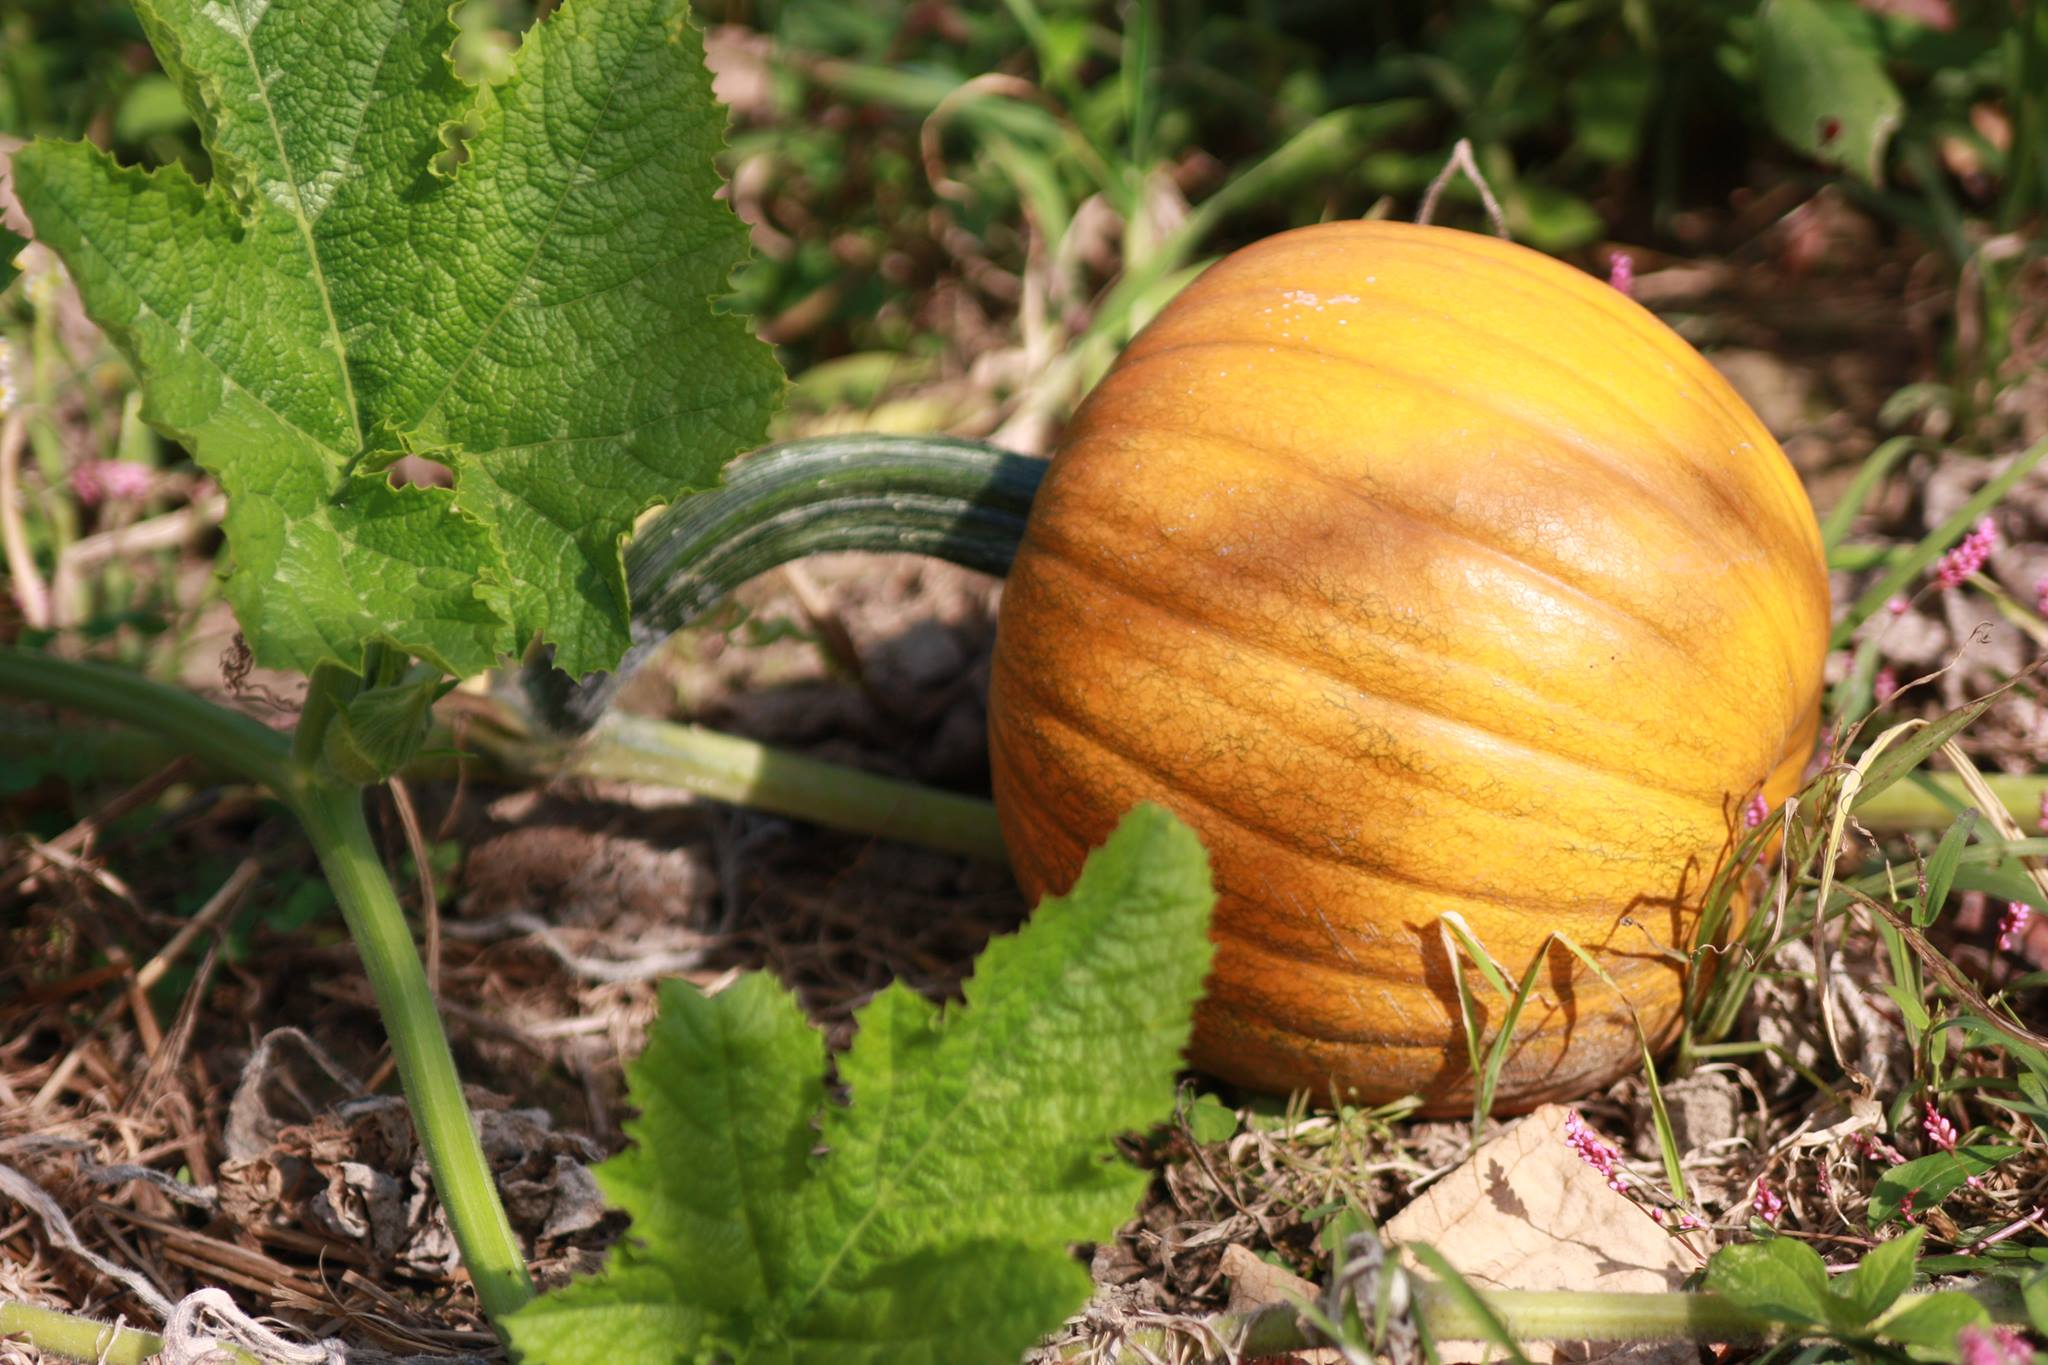 A 'Small Sugar' pumpkin growing on the vine